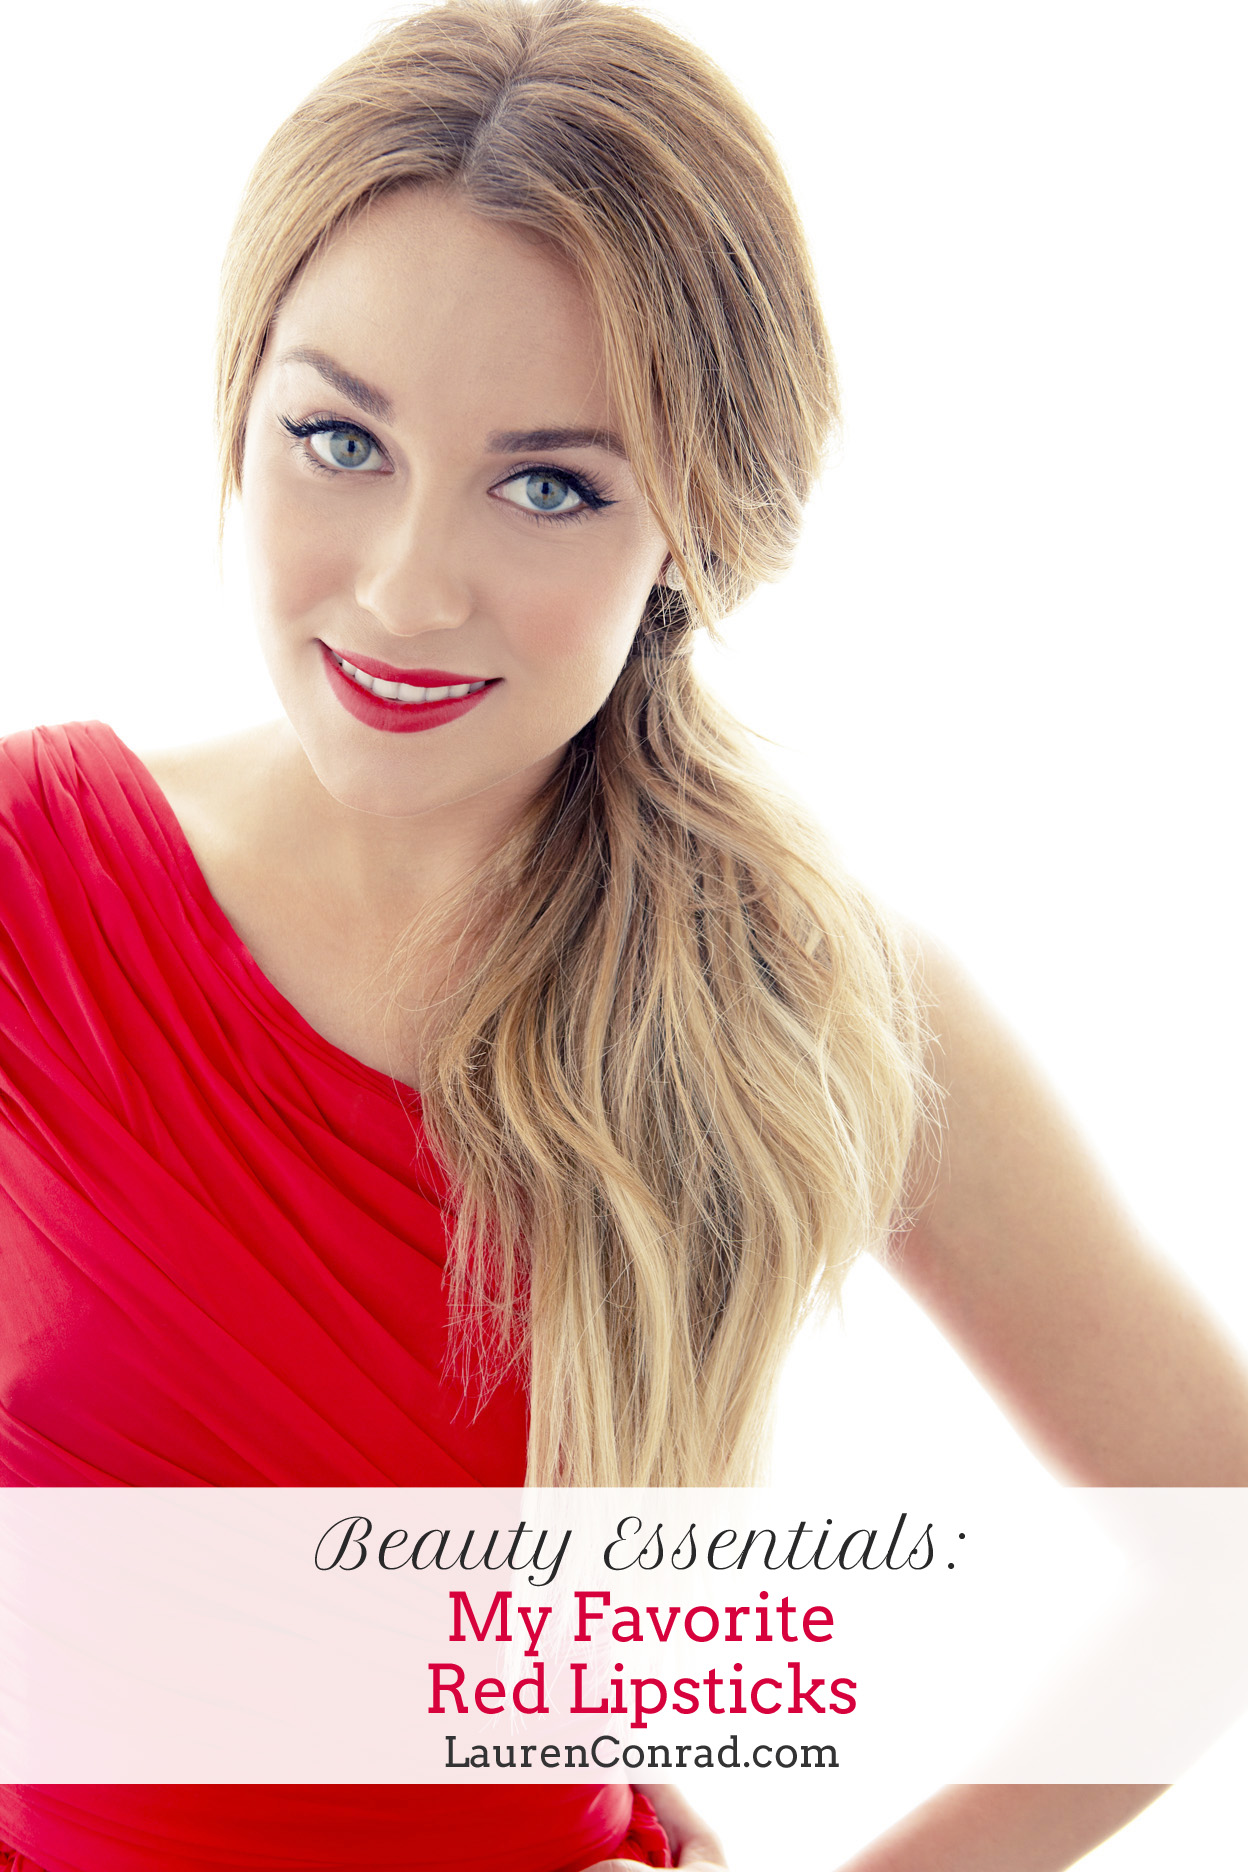 Beauty Essentials: My Favorite Red Lipsticks